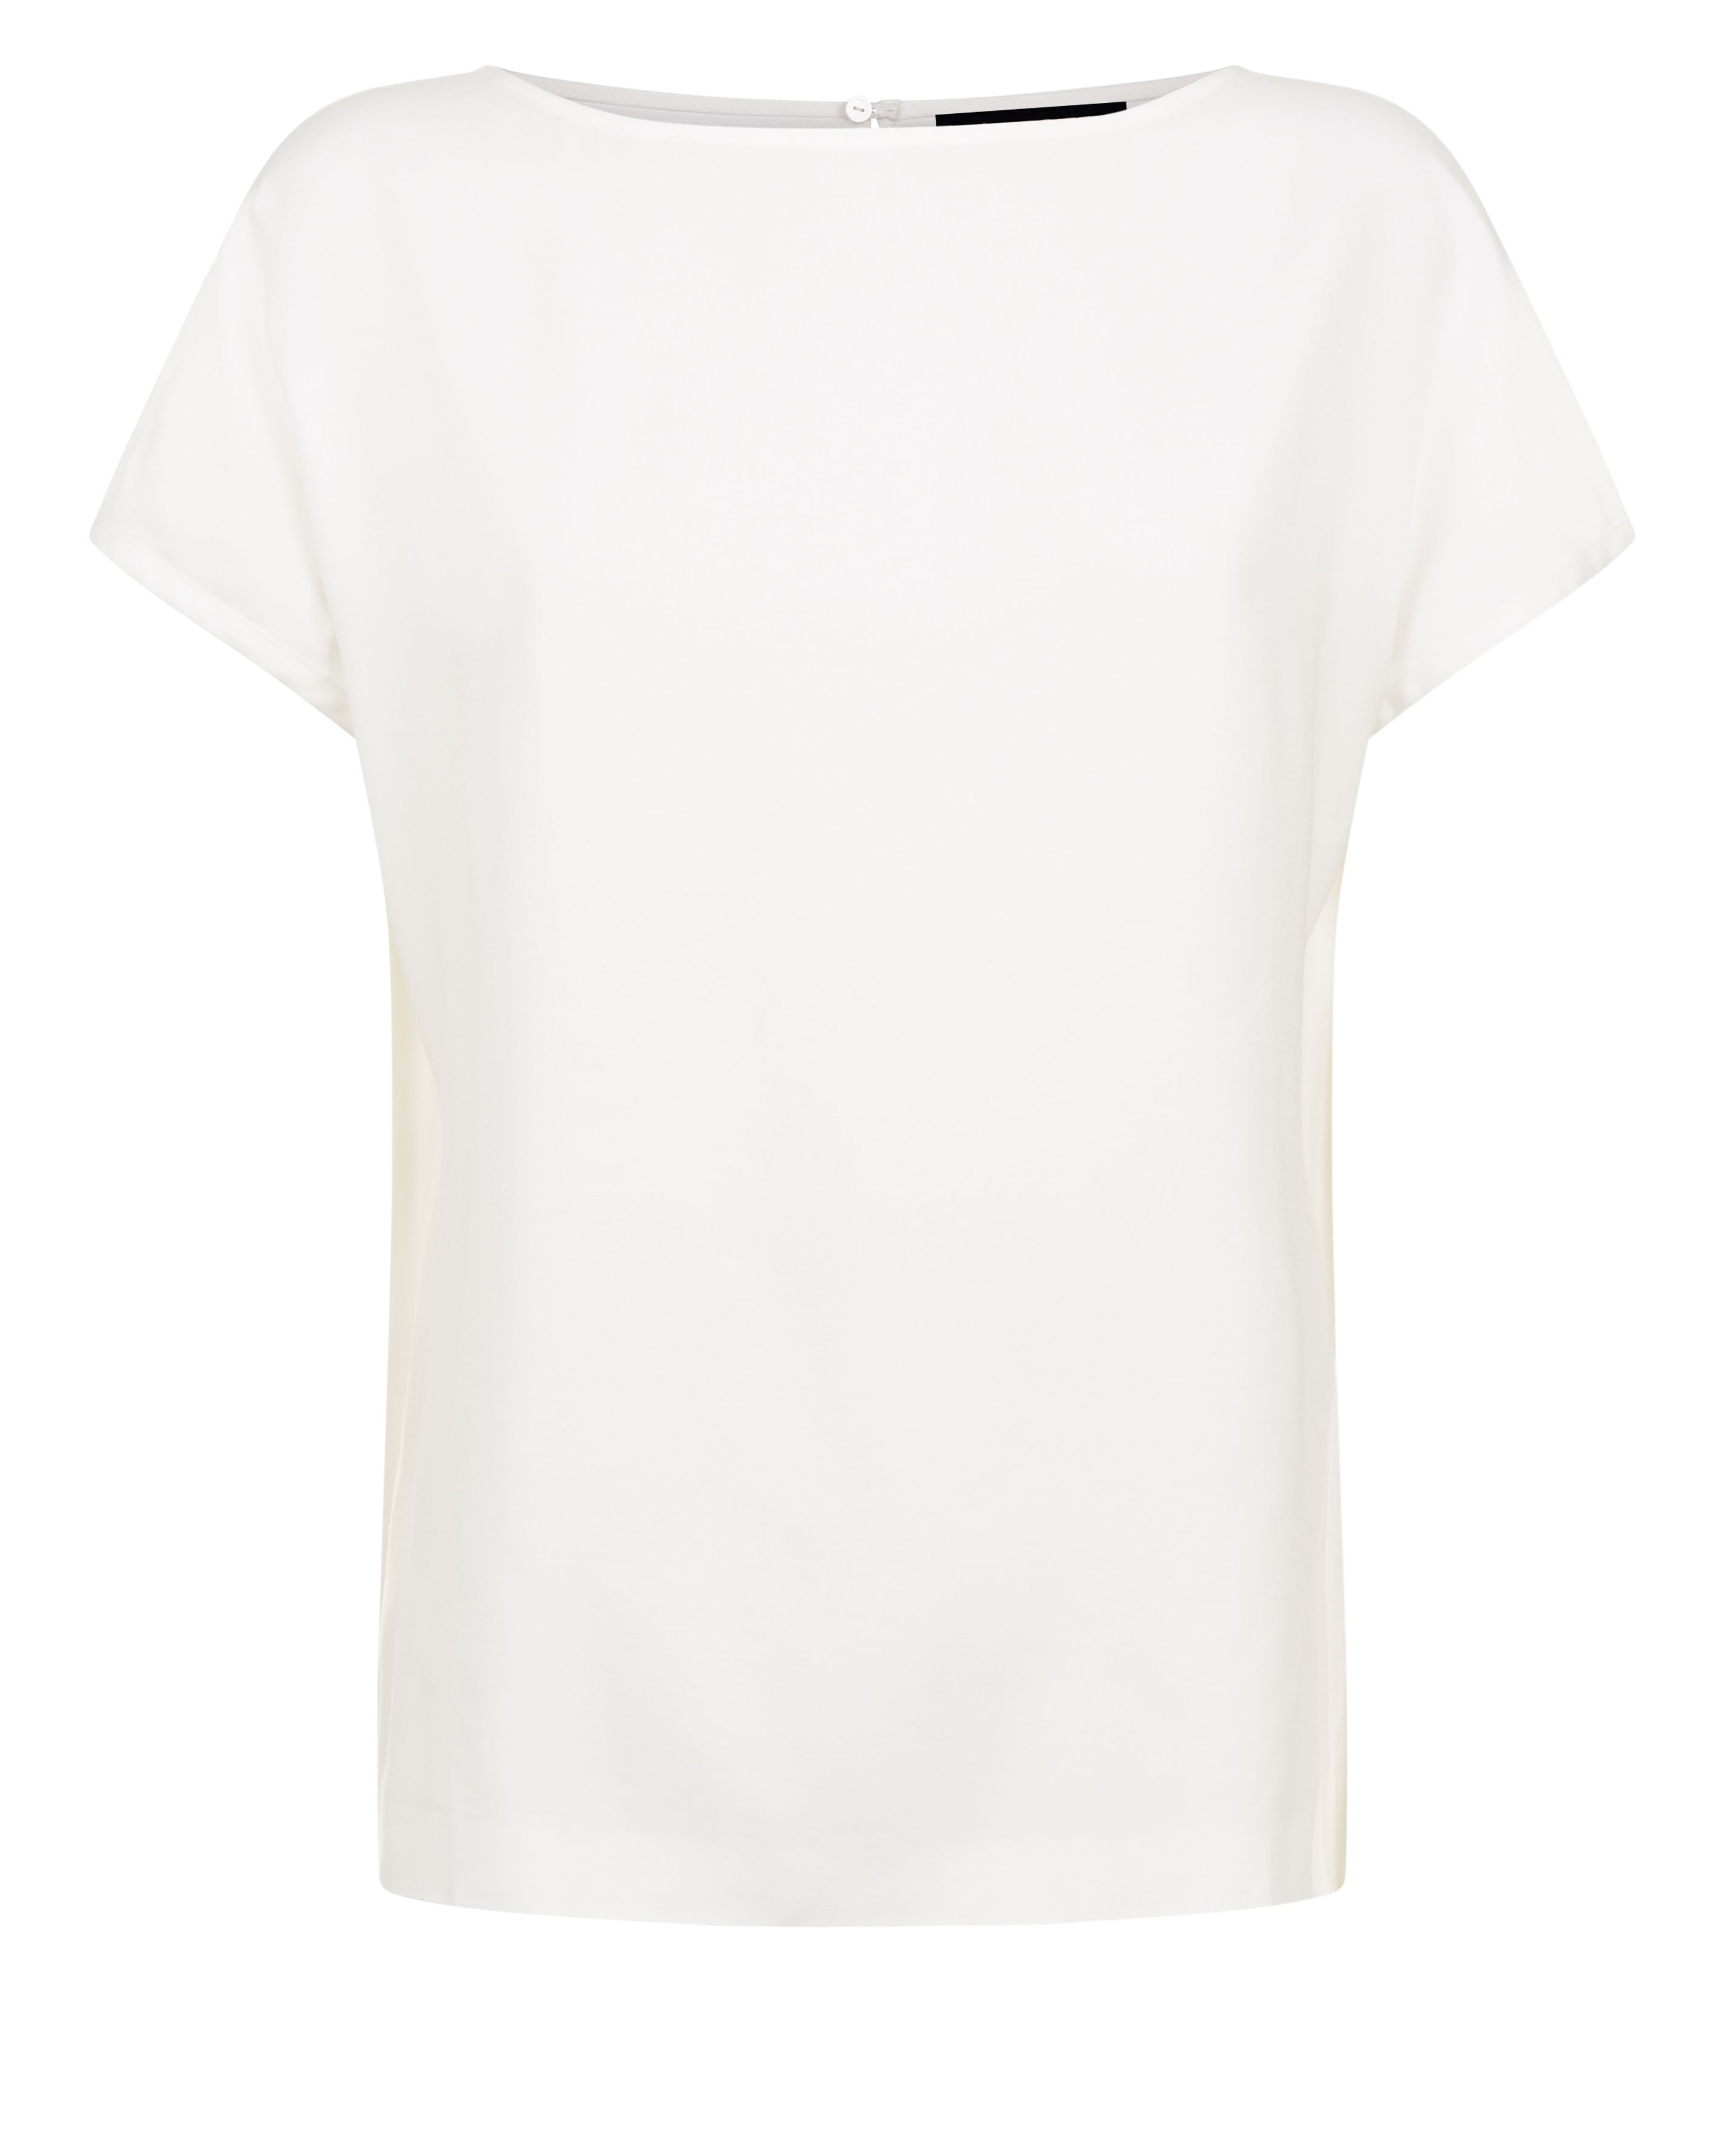 Jaeger Tipping Detail Top, White